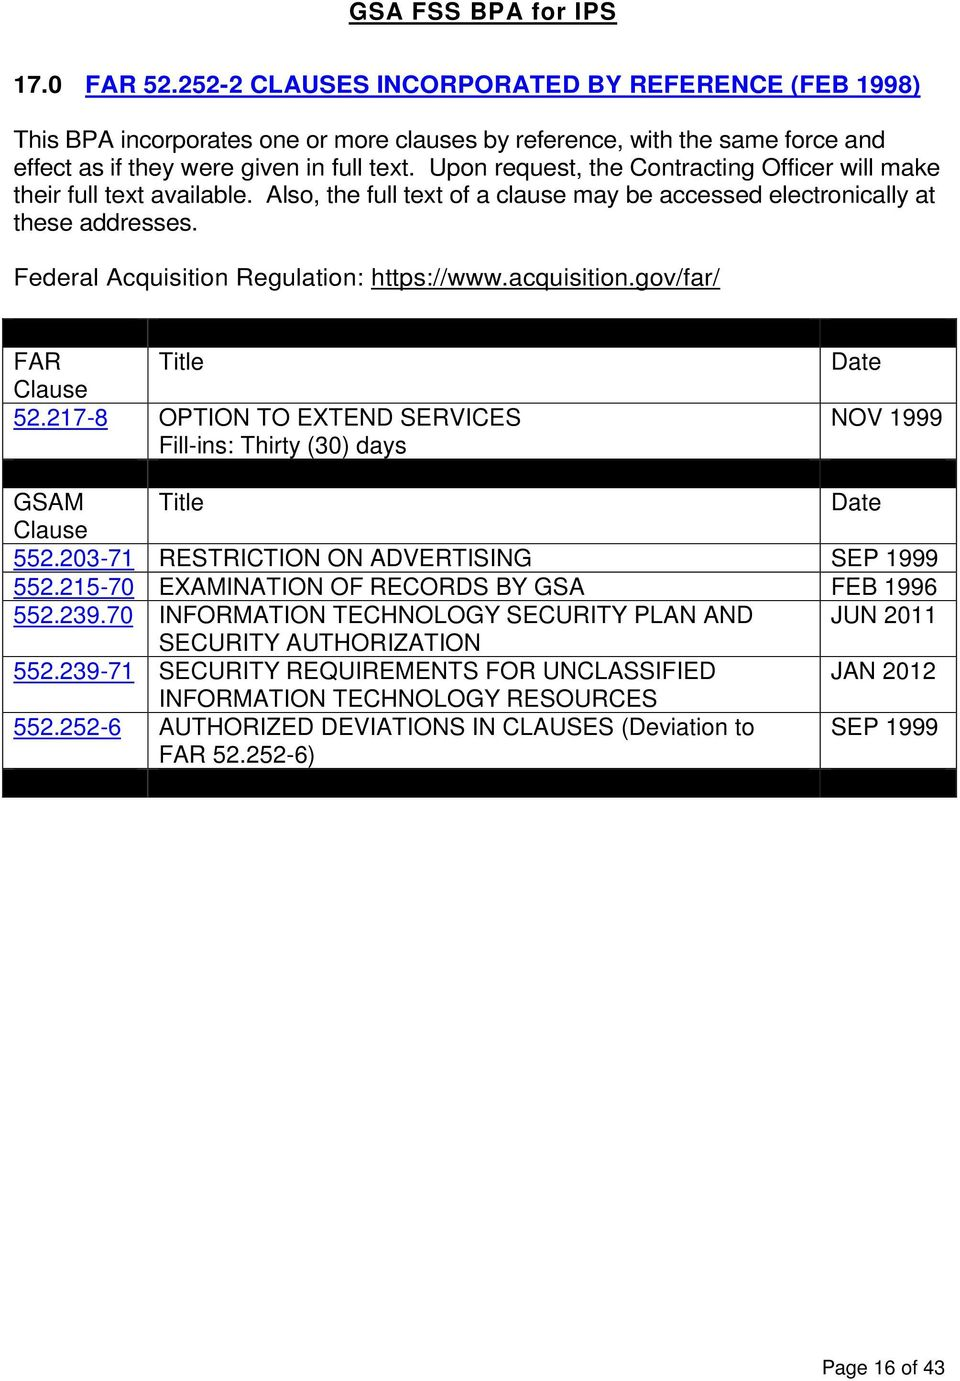 General Services Administration  Federal Supply Schedule